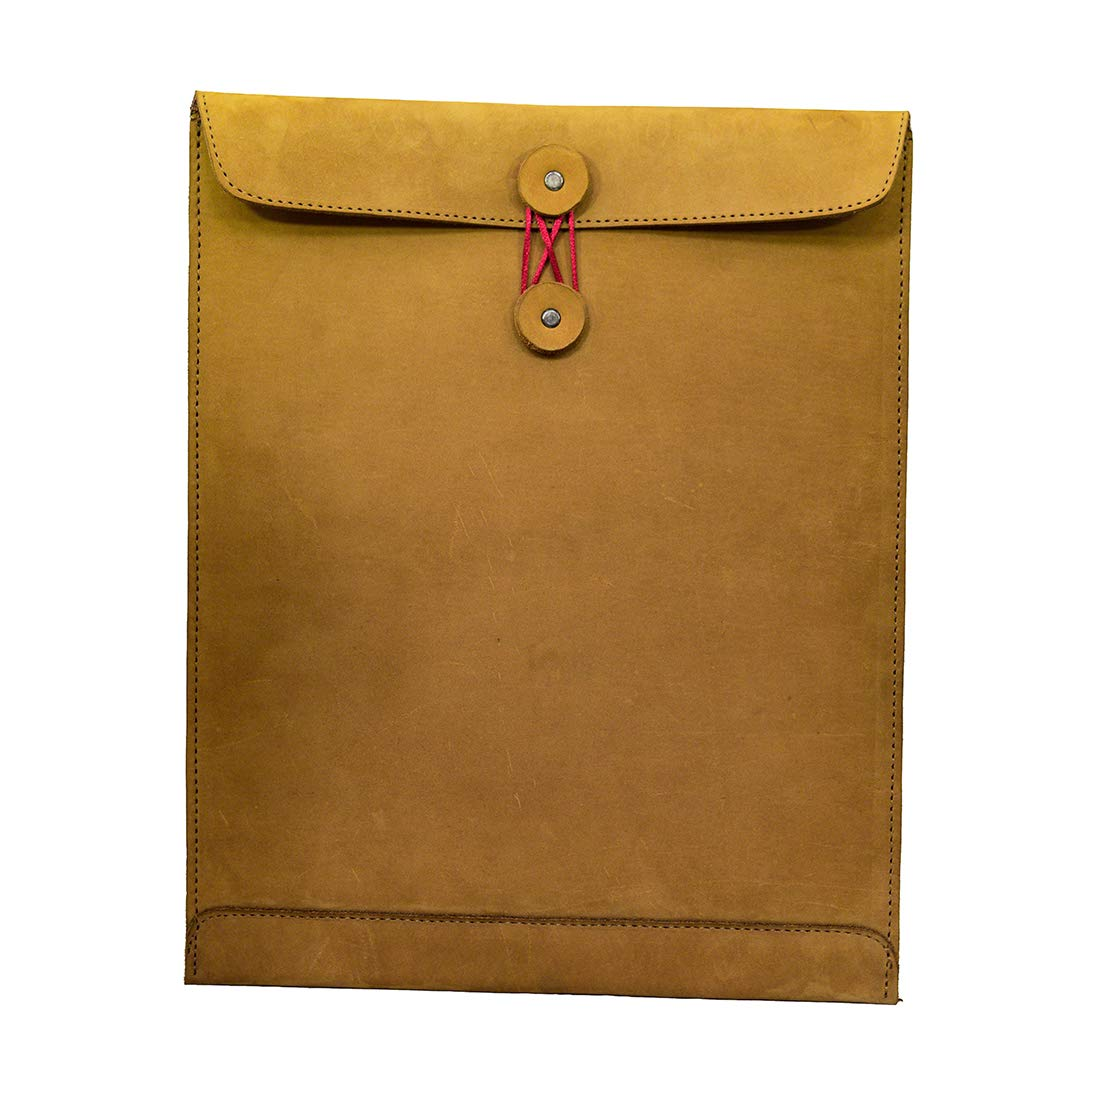 Hide & Drink, Leather Mailing Envelope Document Holder/Office & Work Essentials Handmade, Includes 101 Year Warranty :: Old Tobacco